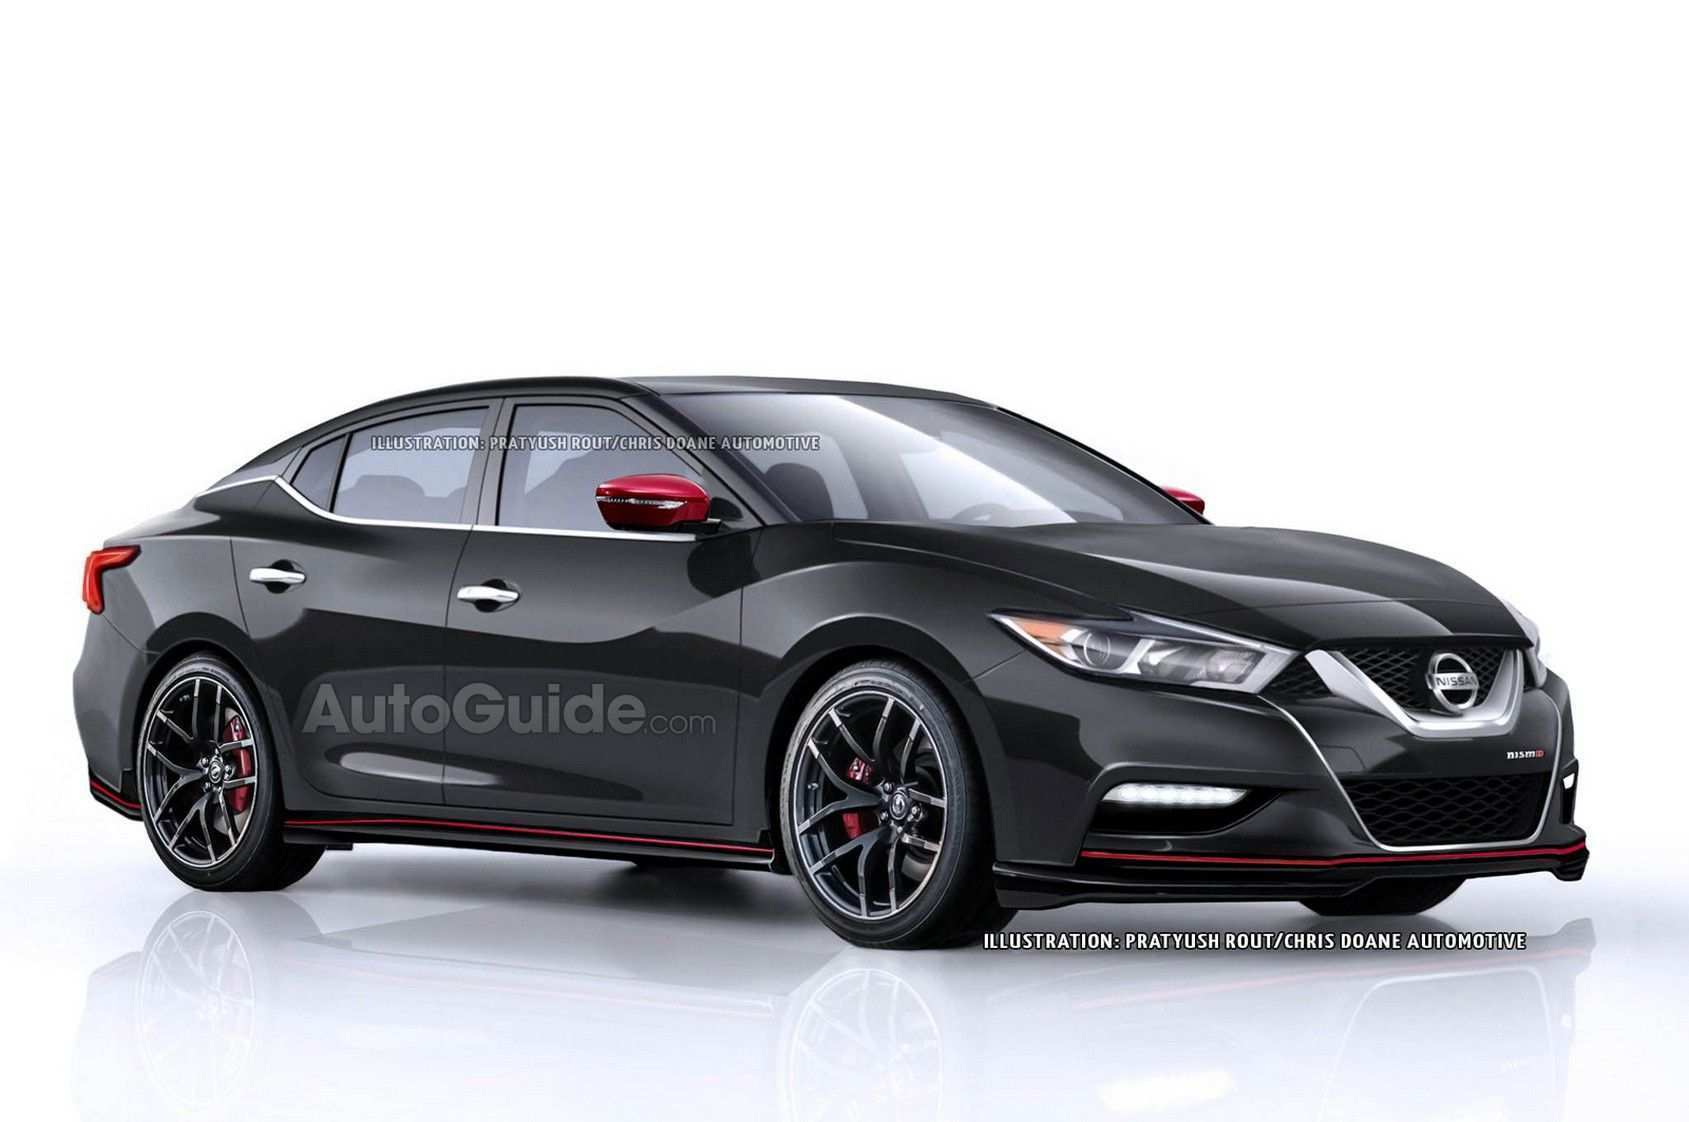 50 New Nissan Nismo 2020 Prices for Nissan Nismo 2020